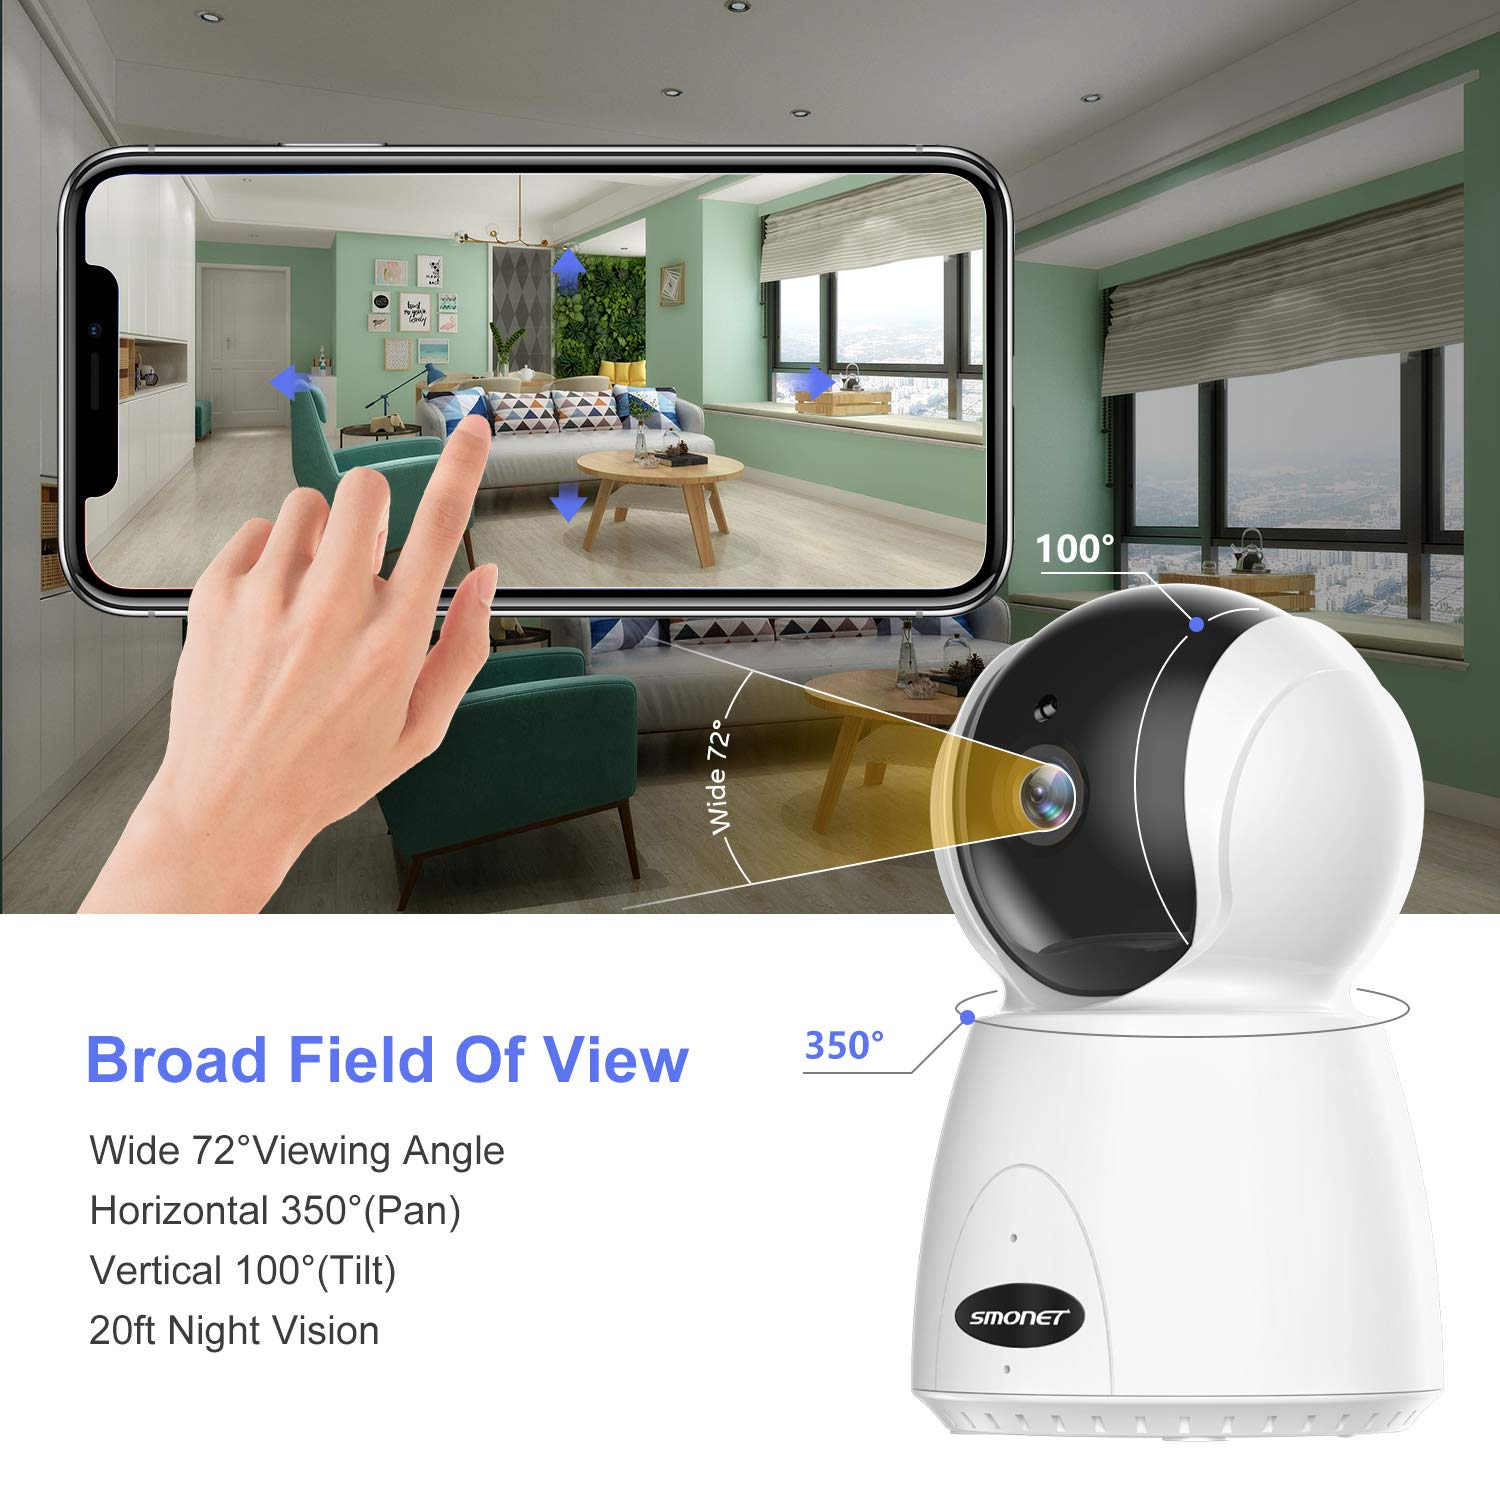 Home Security Camera, SMONET Indoor WiFi Camera with Motion Detection, Remote Control Via Mobile Phone, 1080P Full HD Non-Stop Monitoring On Baby Nanny Pet